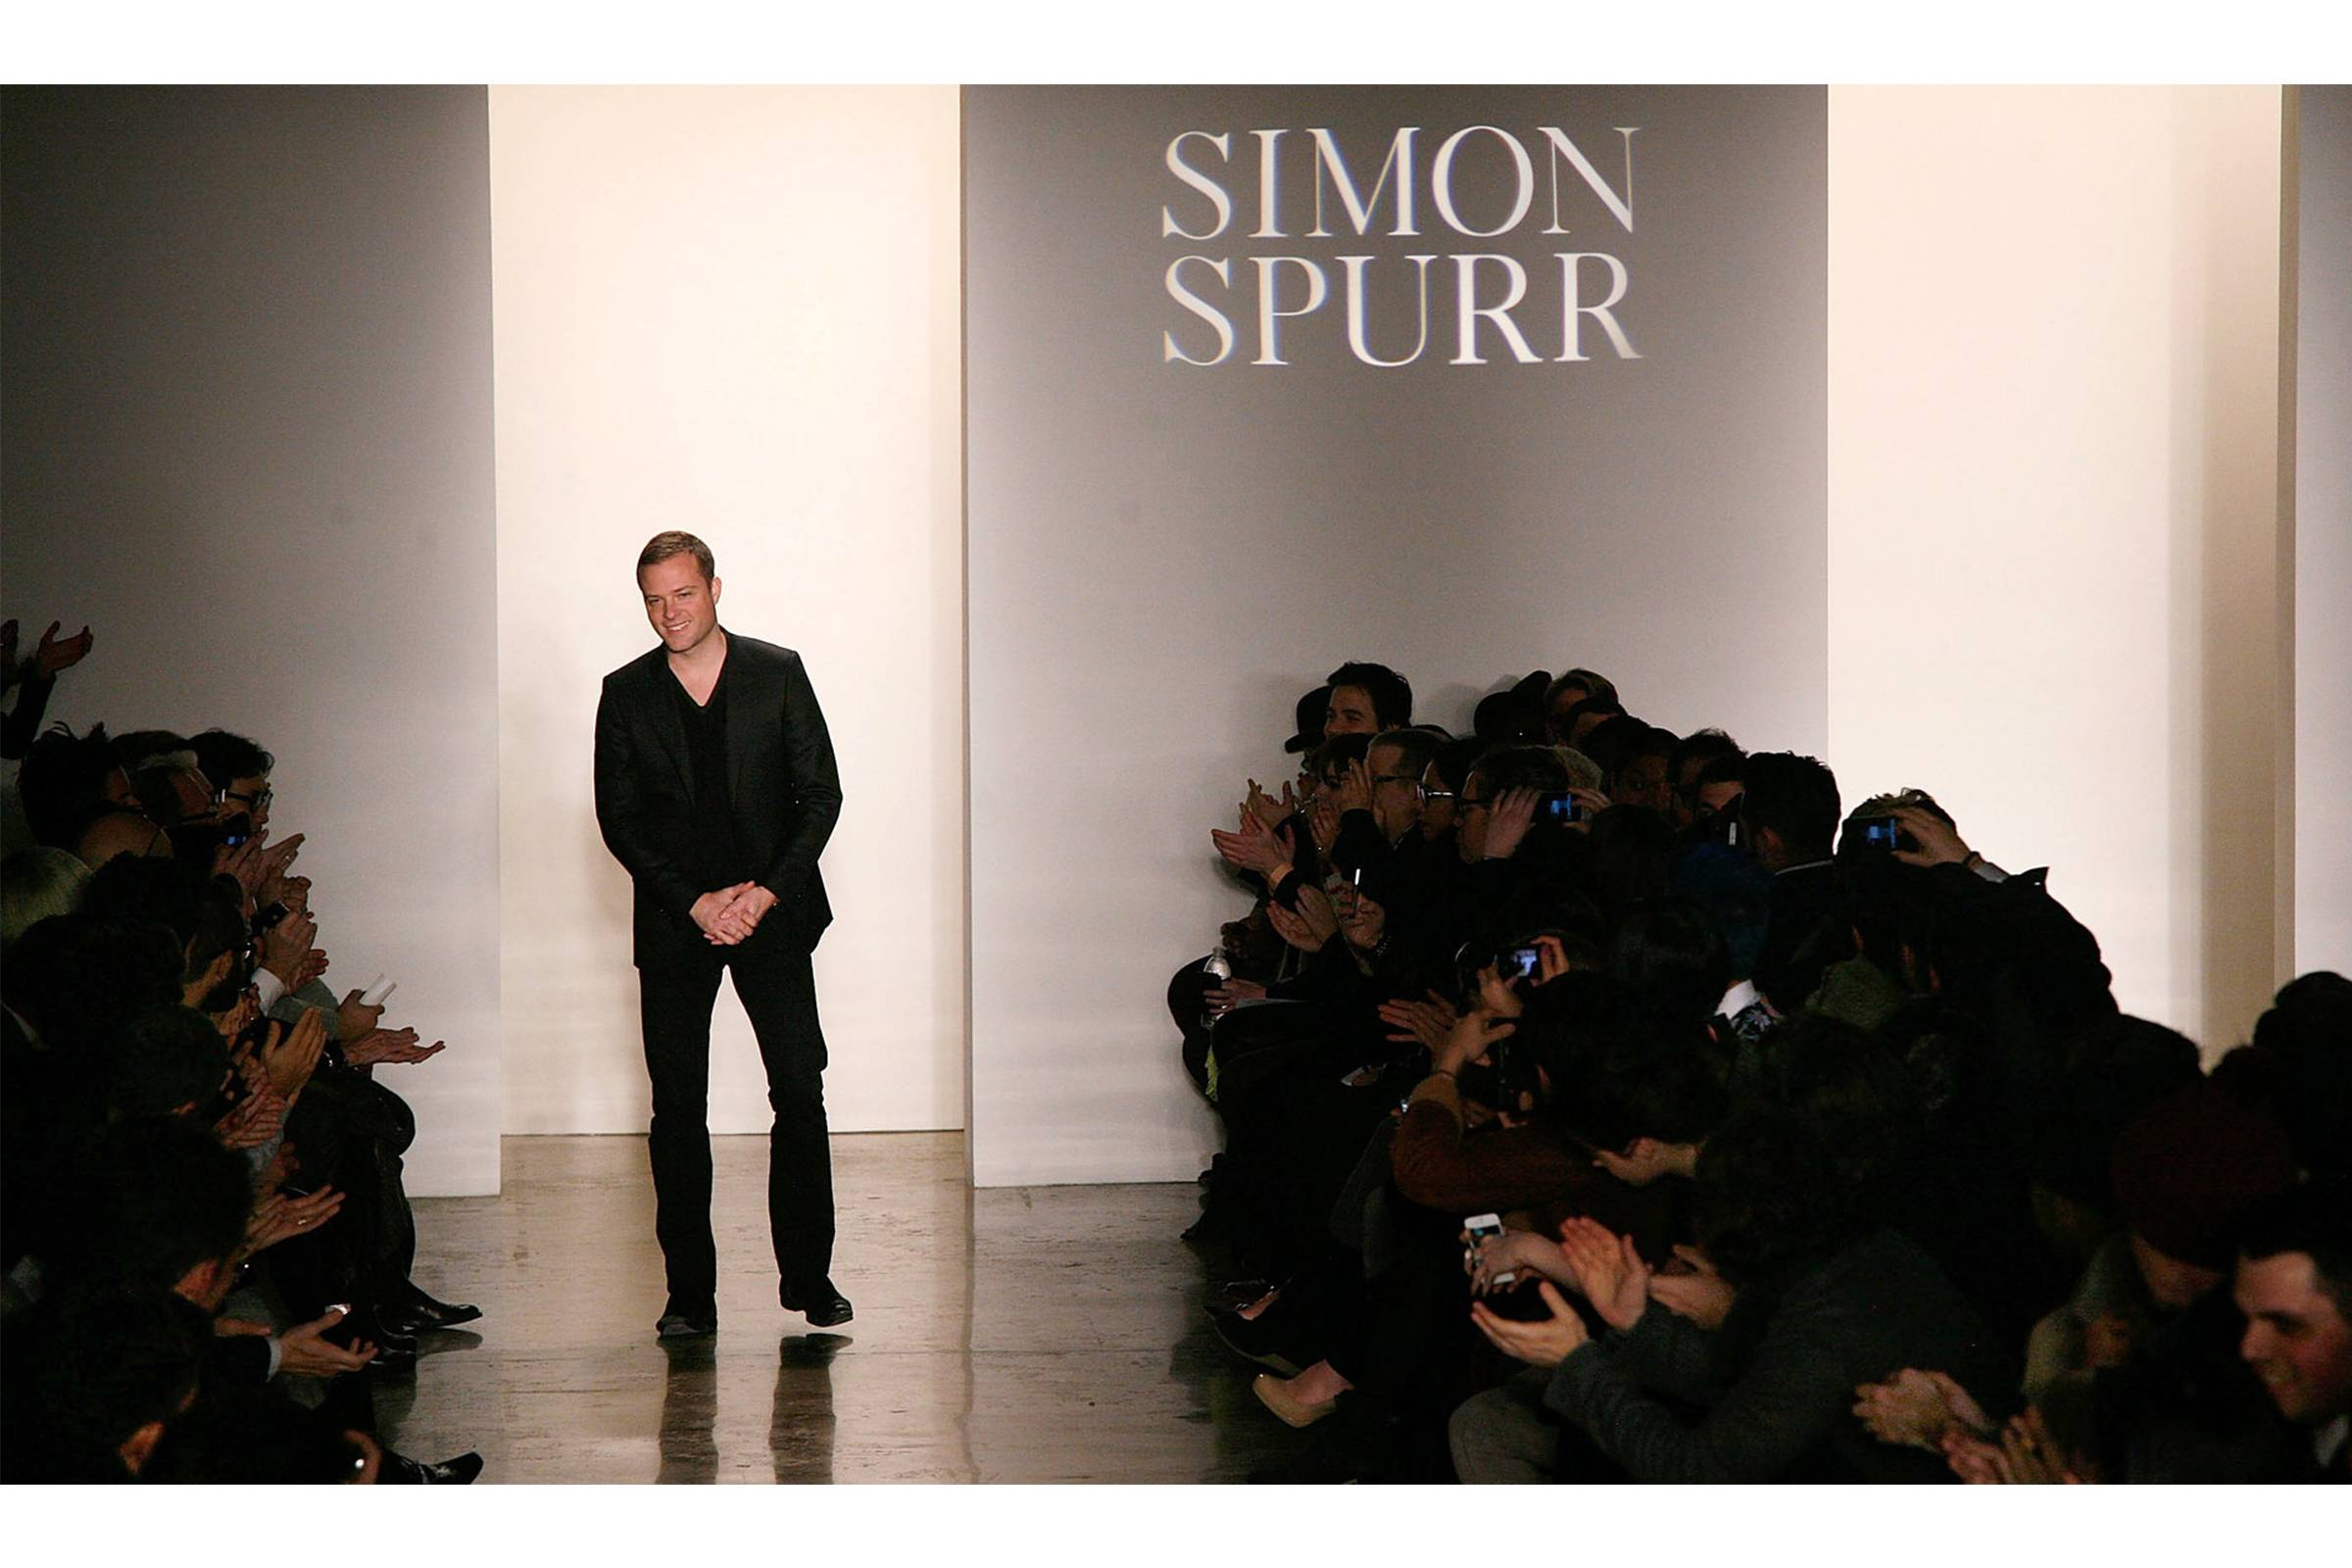 SPURR and Simon Spurr